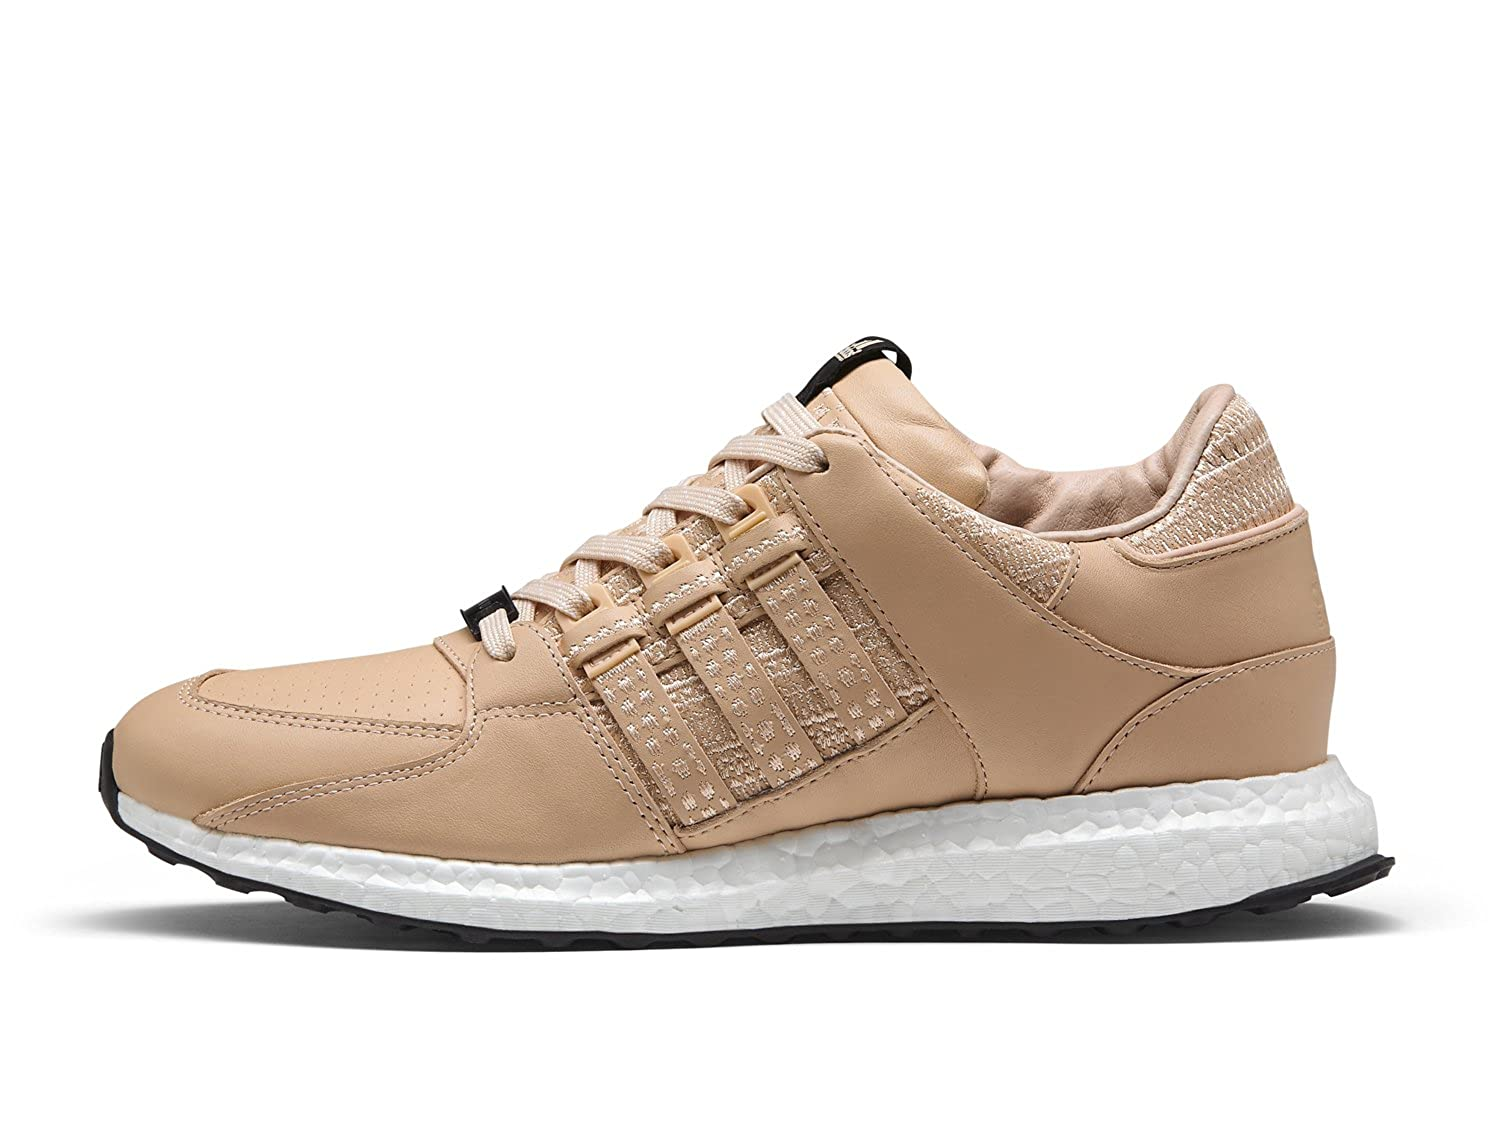 outlet store 452a7 5cb22 Amazon.com  adidas Consortium x Avenue Men EQT 9316 Support (BlackVegetable  tanWhite)  Fashion Sneakers